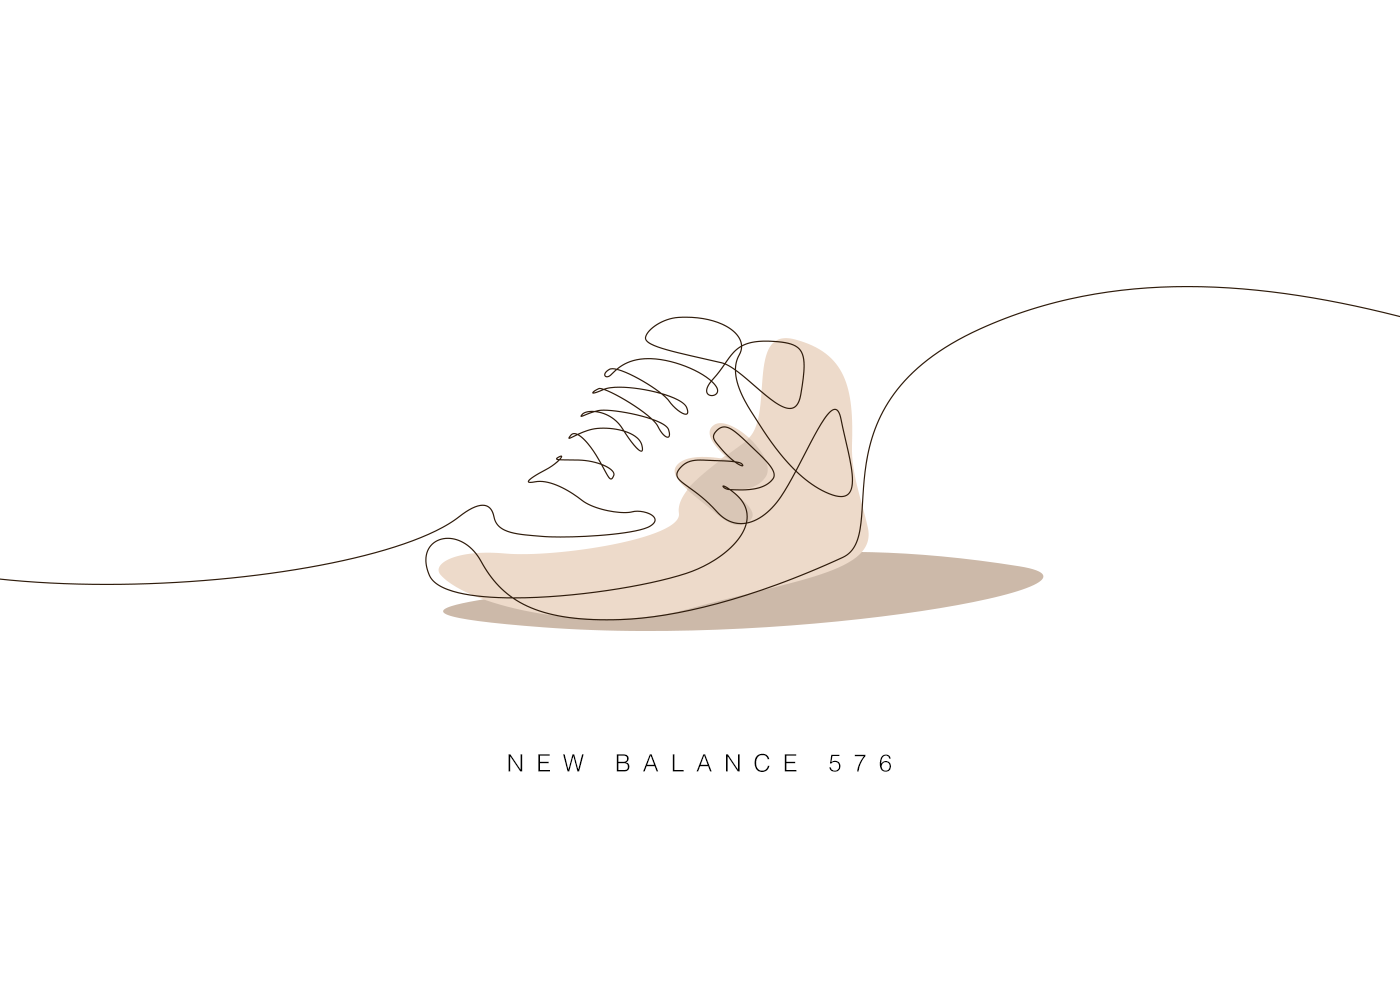 one-line-memorable-sneakers-08